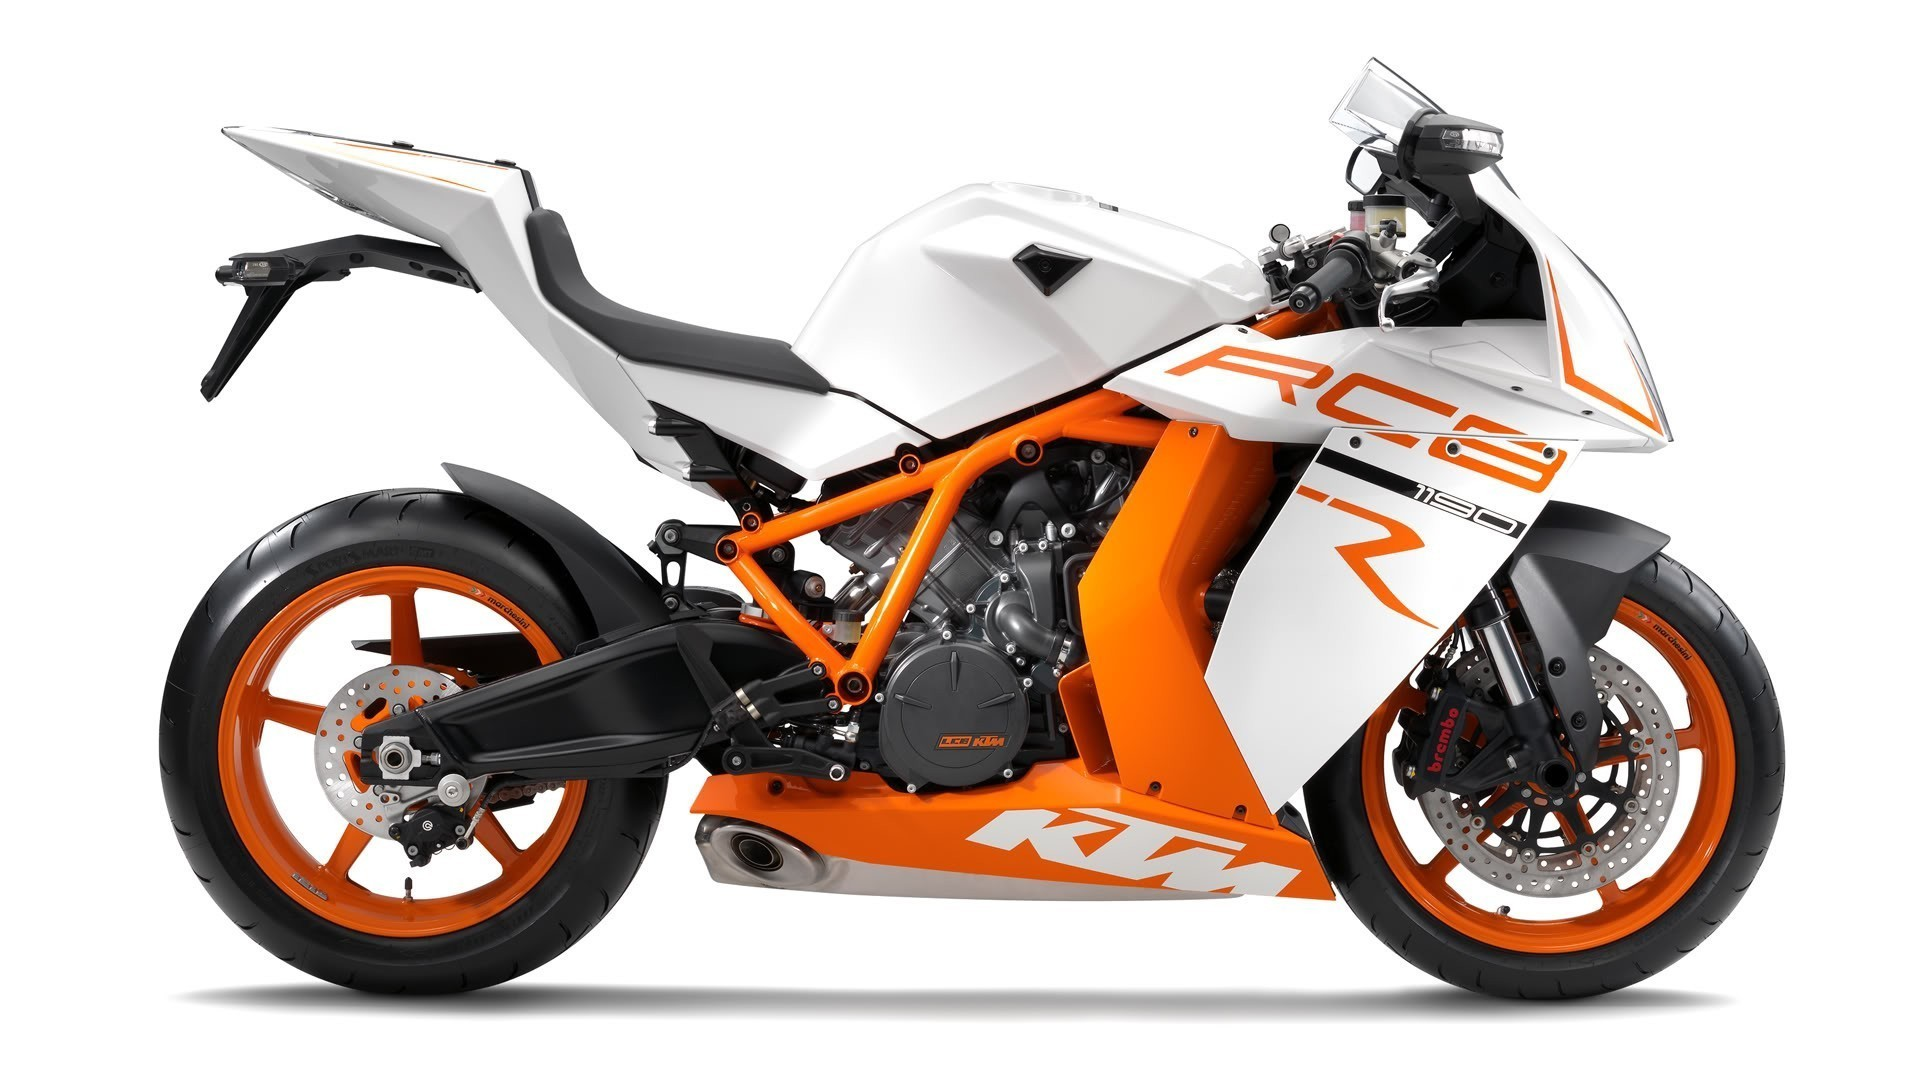 1920x1080 Ktm rc8 1190 motorbikes wallpaper